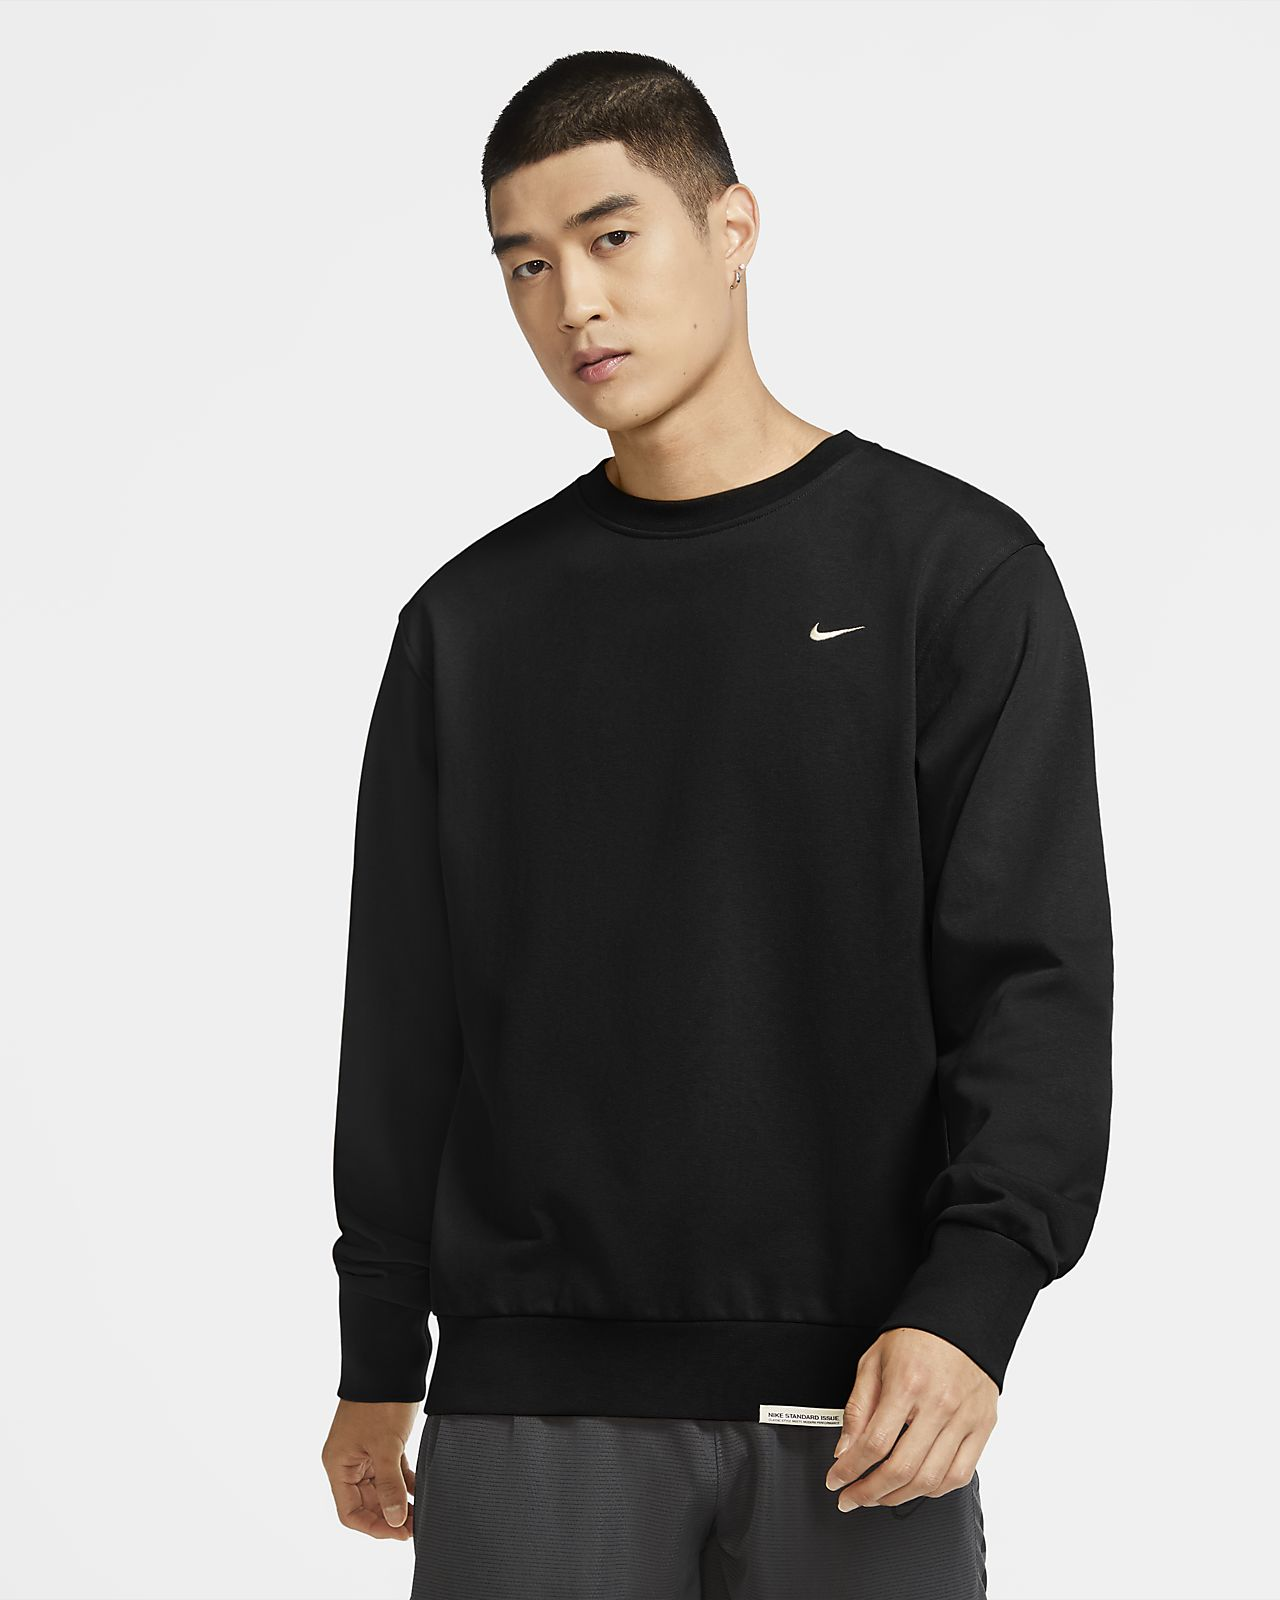 Nike Standard Issue Men's Basketball Crew